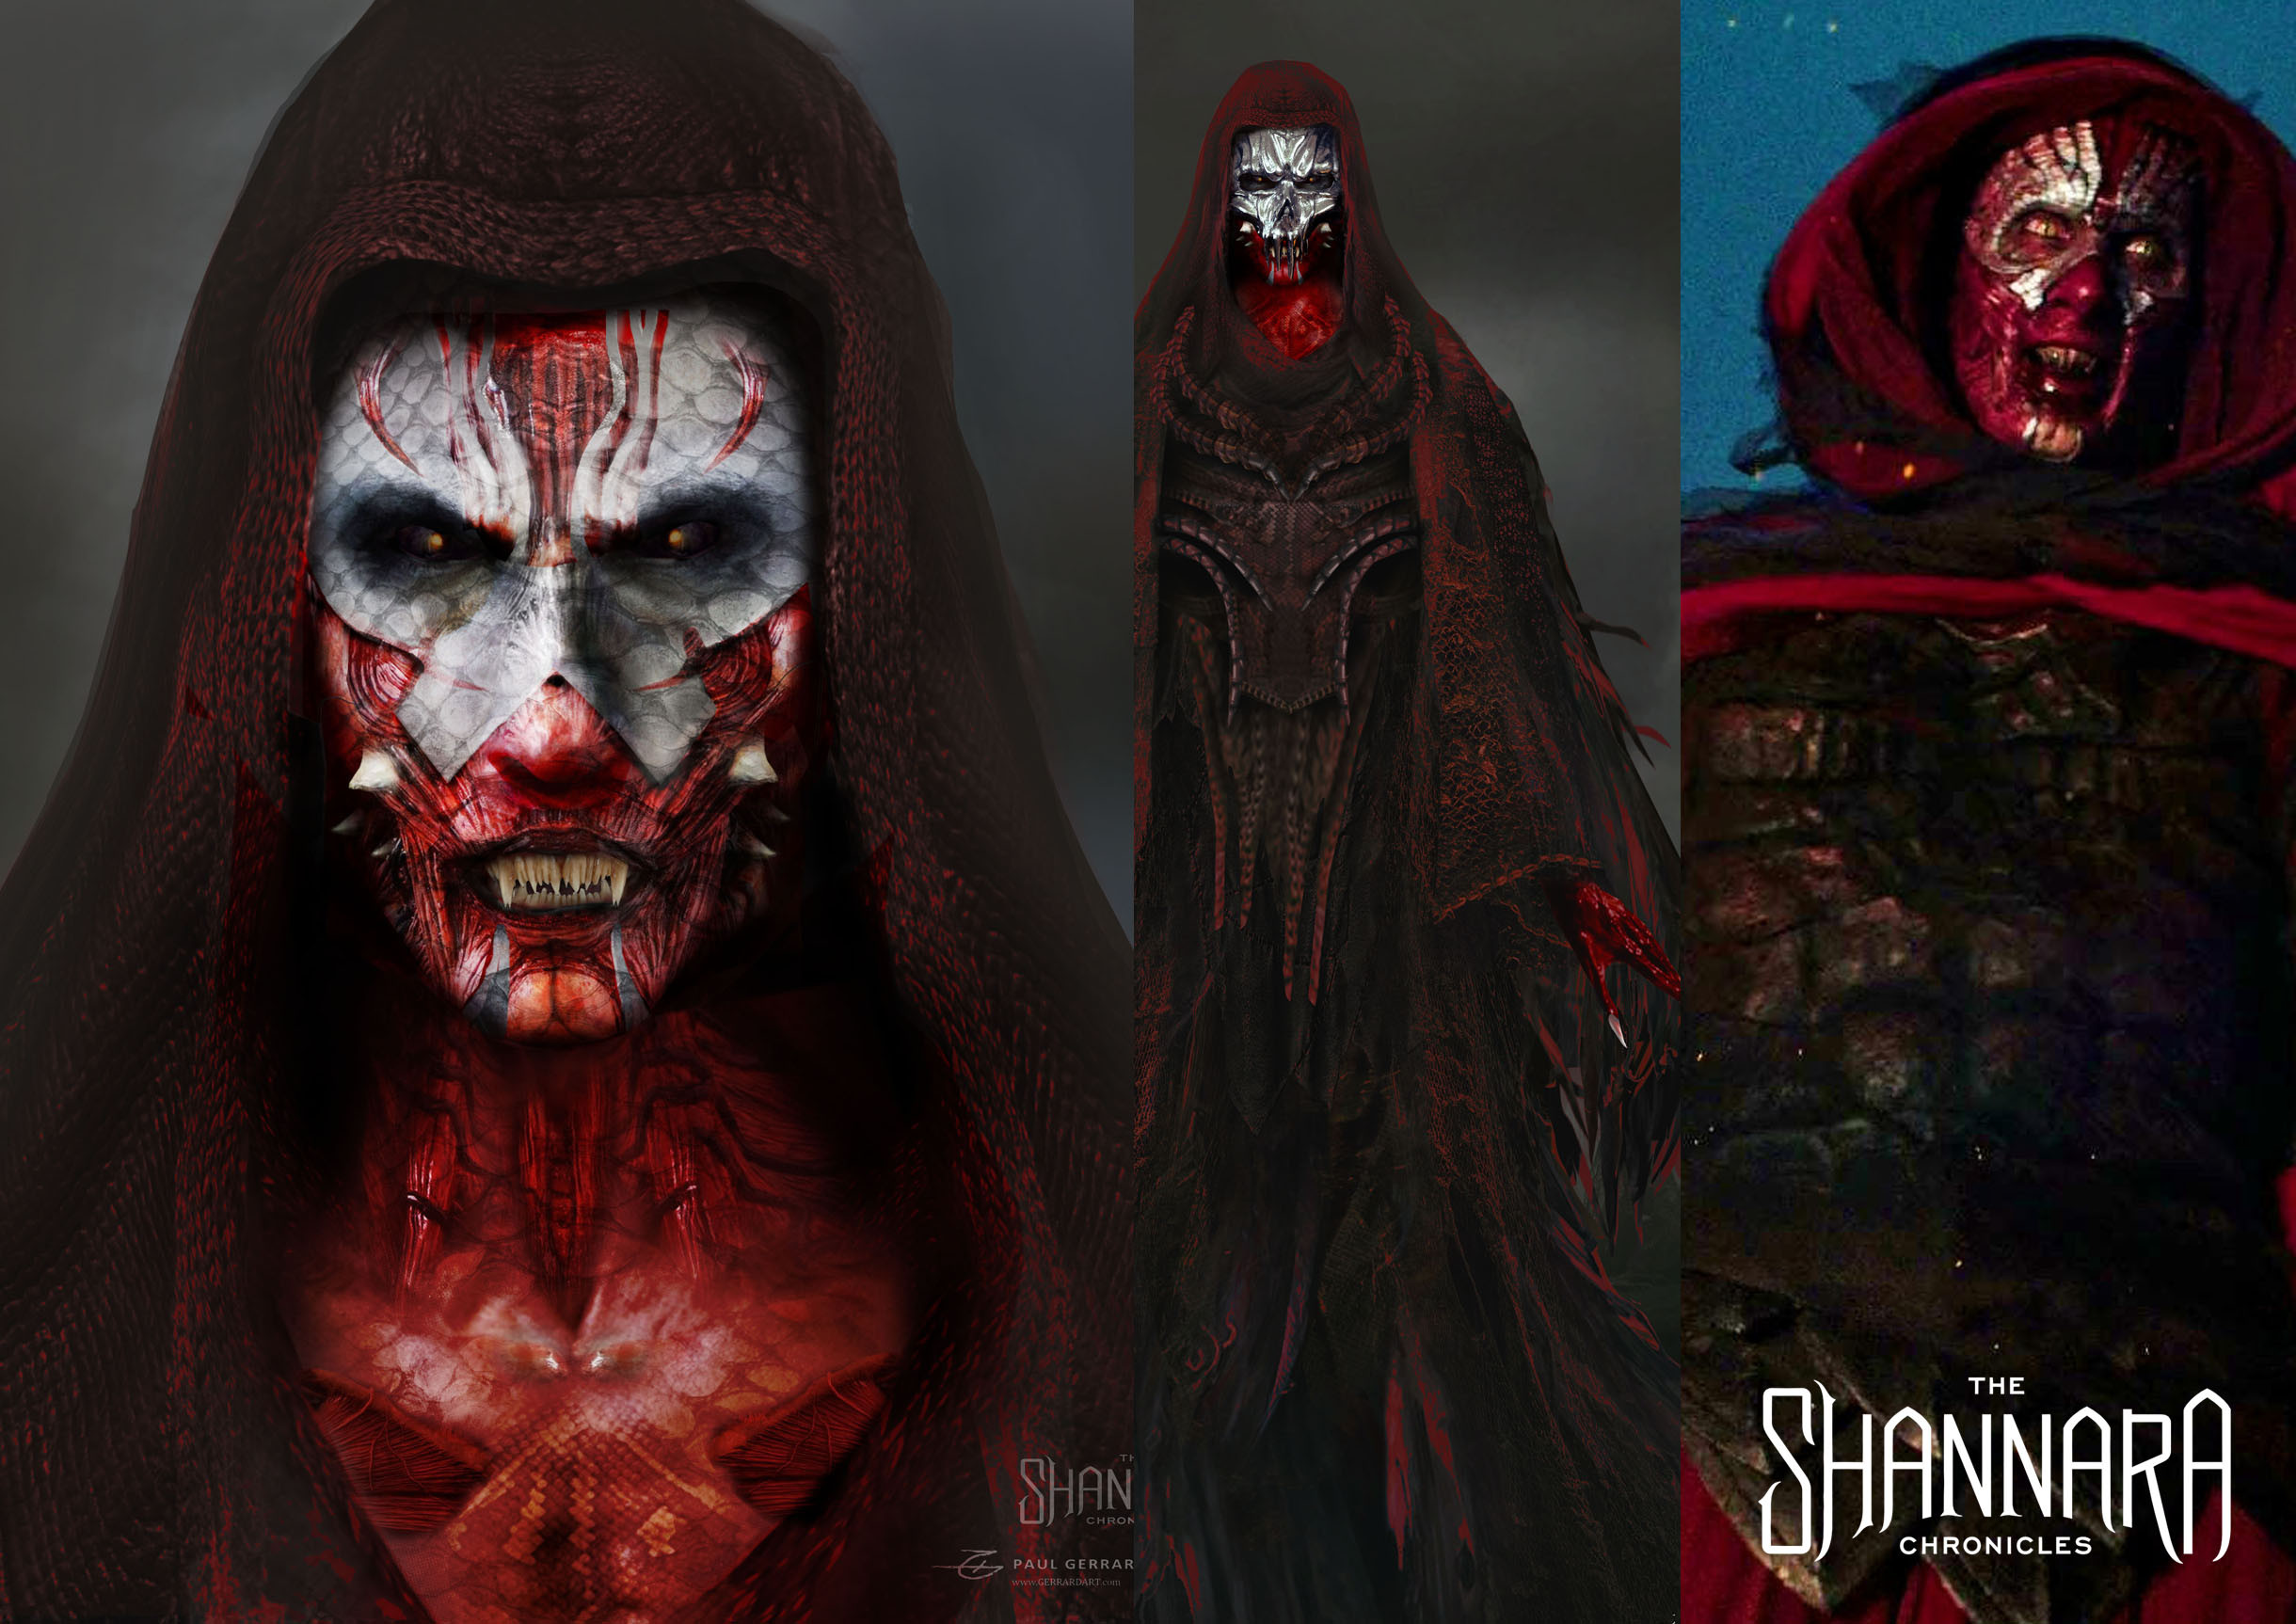 The Blood Wraith from The Shannara Chronicles.